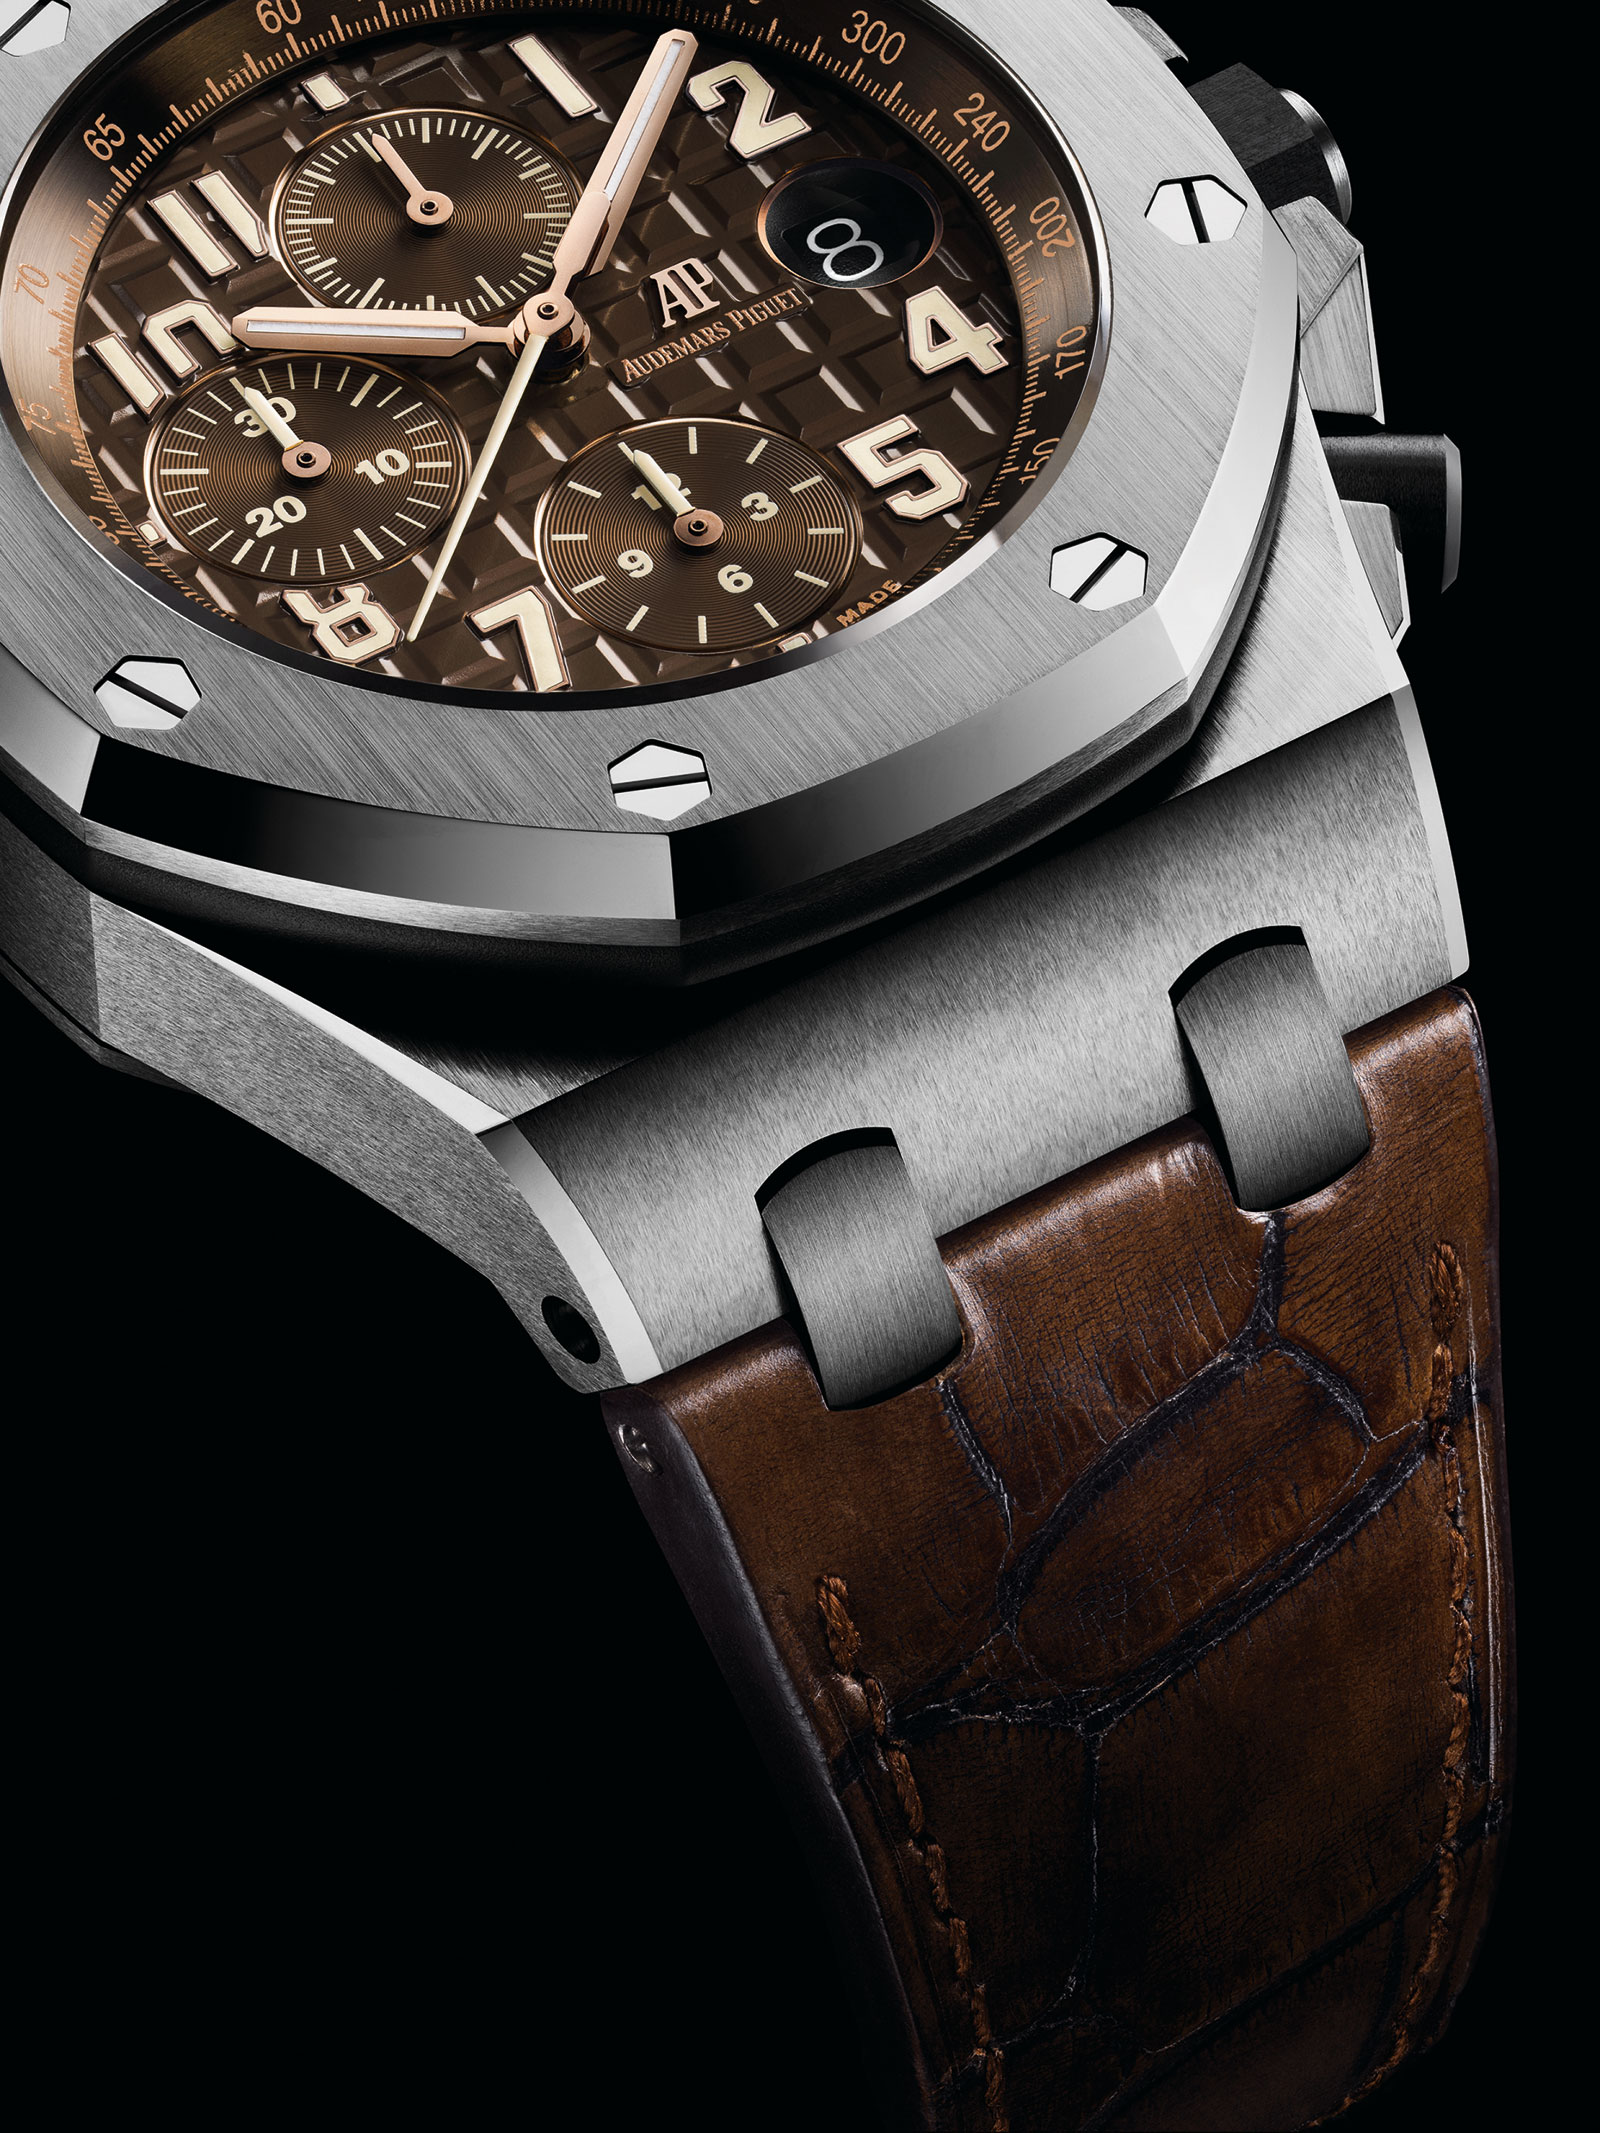 Audemars Piguet Facelifts The Royal Oak Offshore